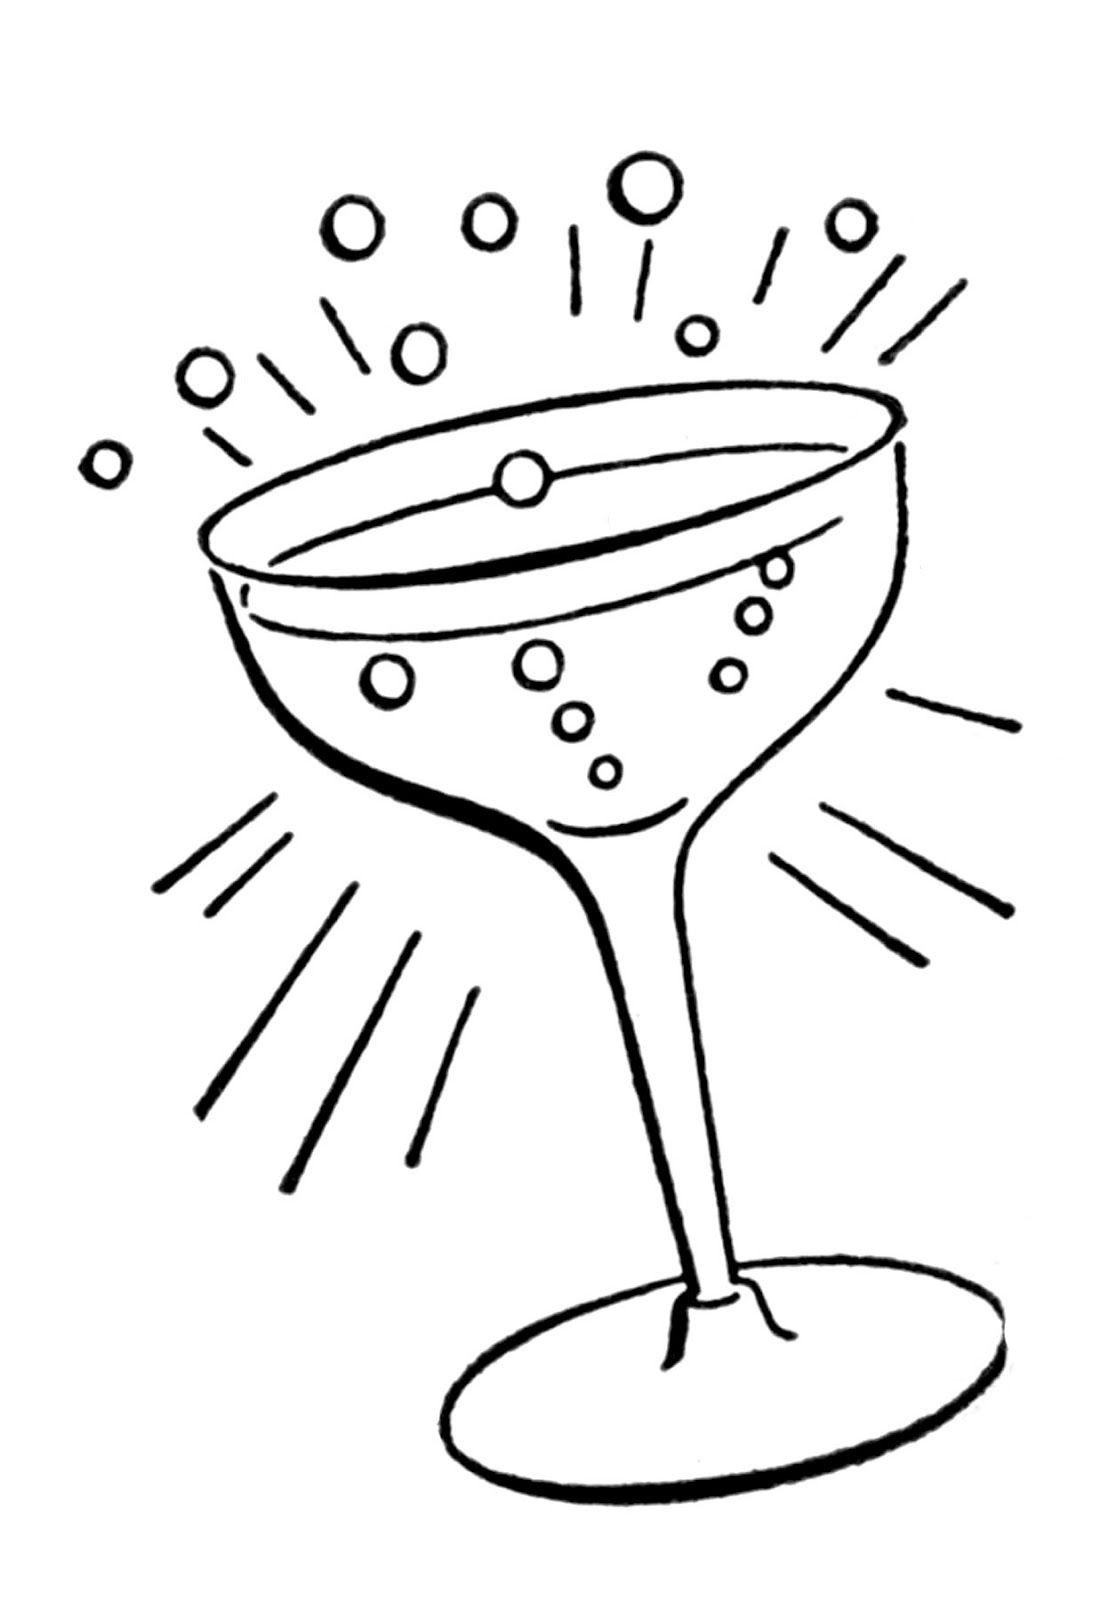 Line Drawing Graphics : Retro line drawings cocktail glass